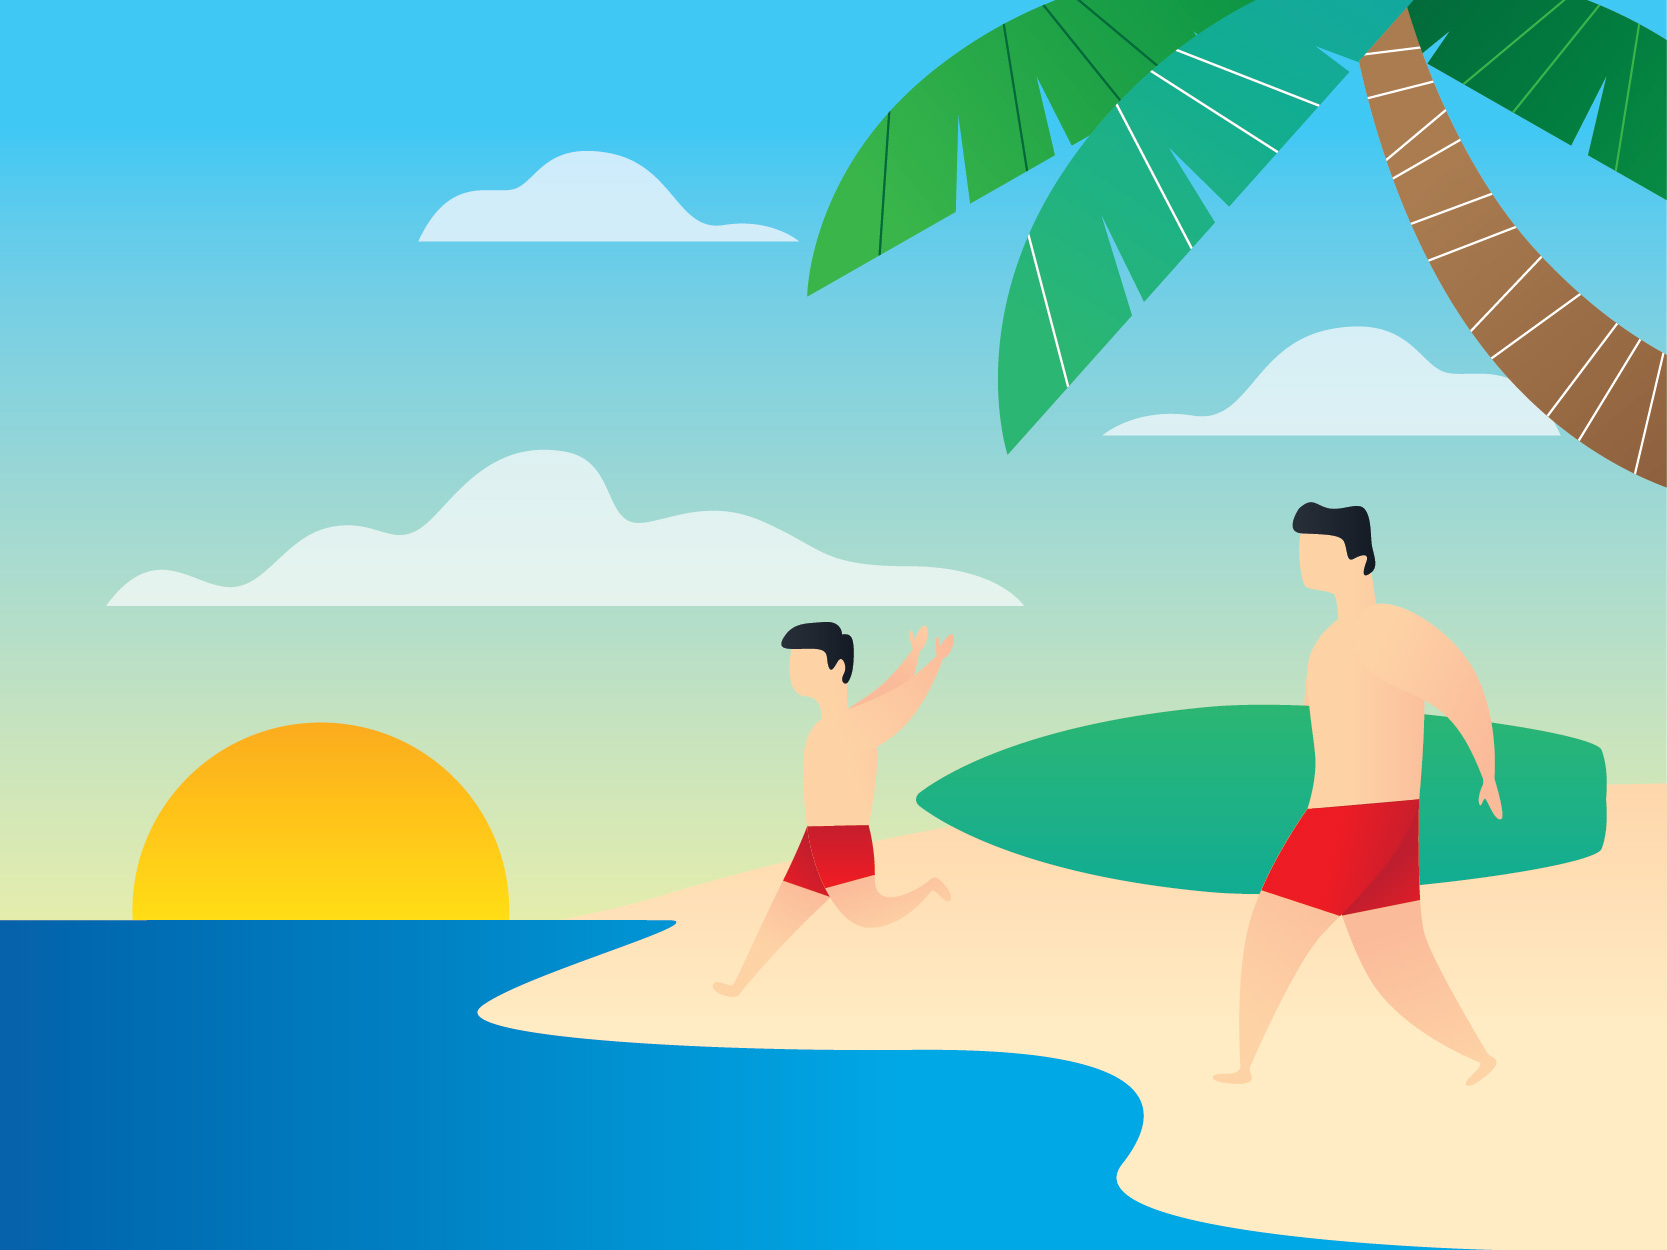 Older Couple On Beach Vacation Images, Stock Photos Vectors